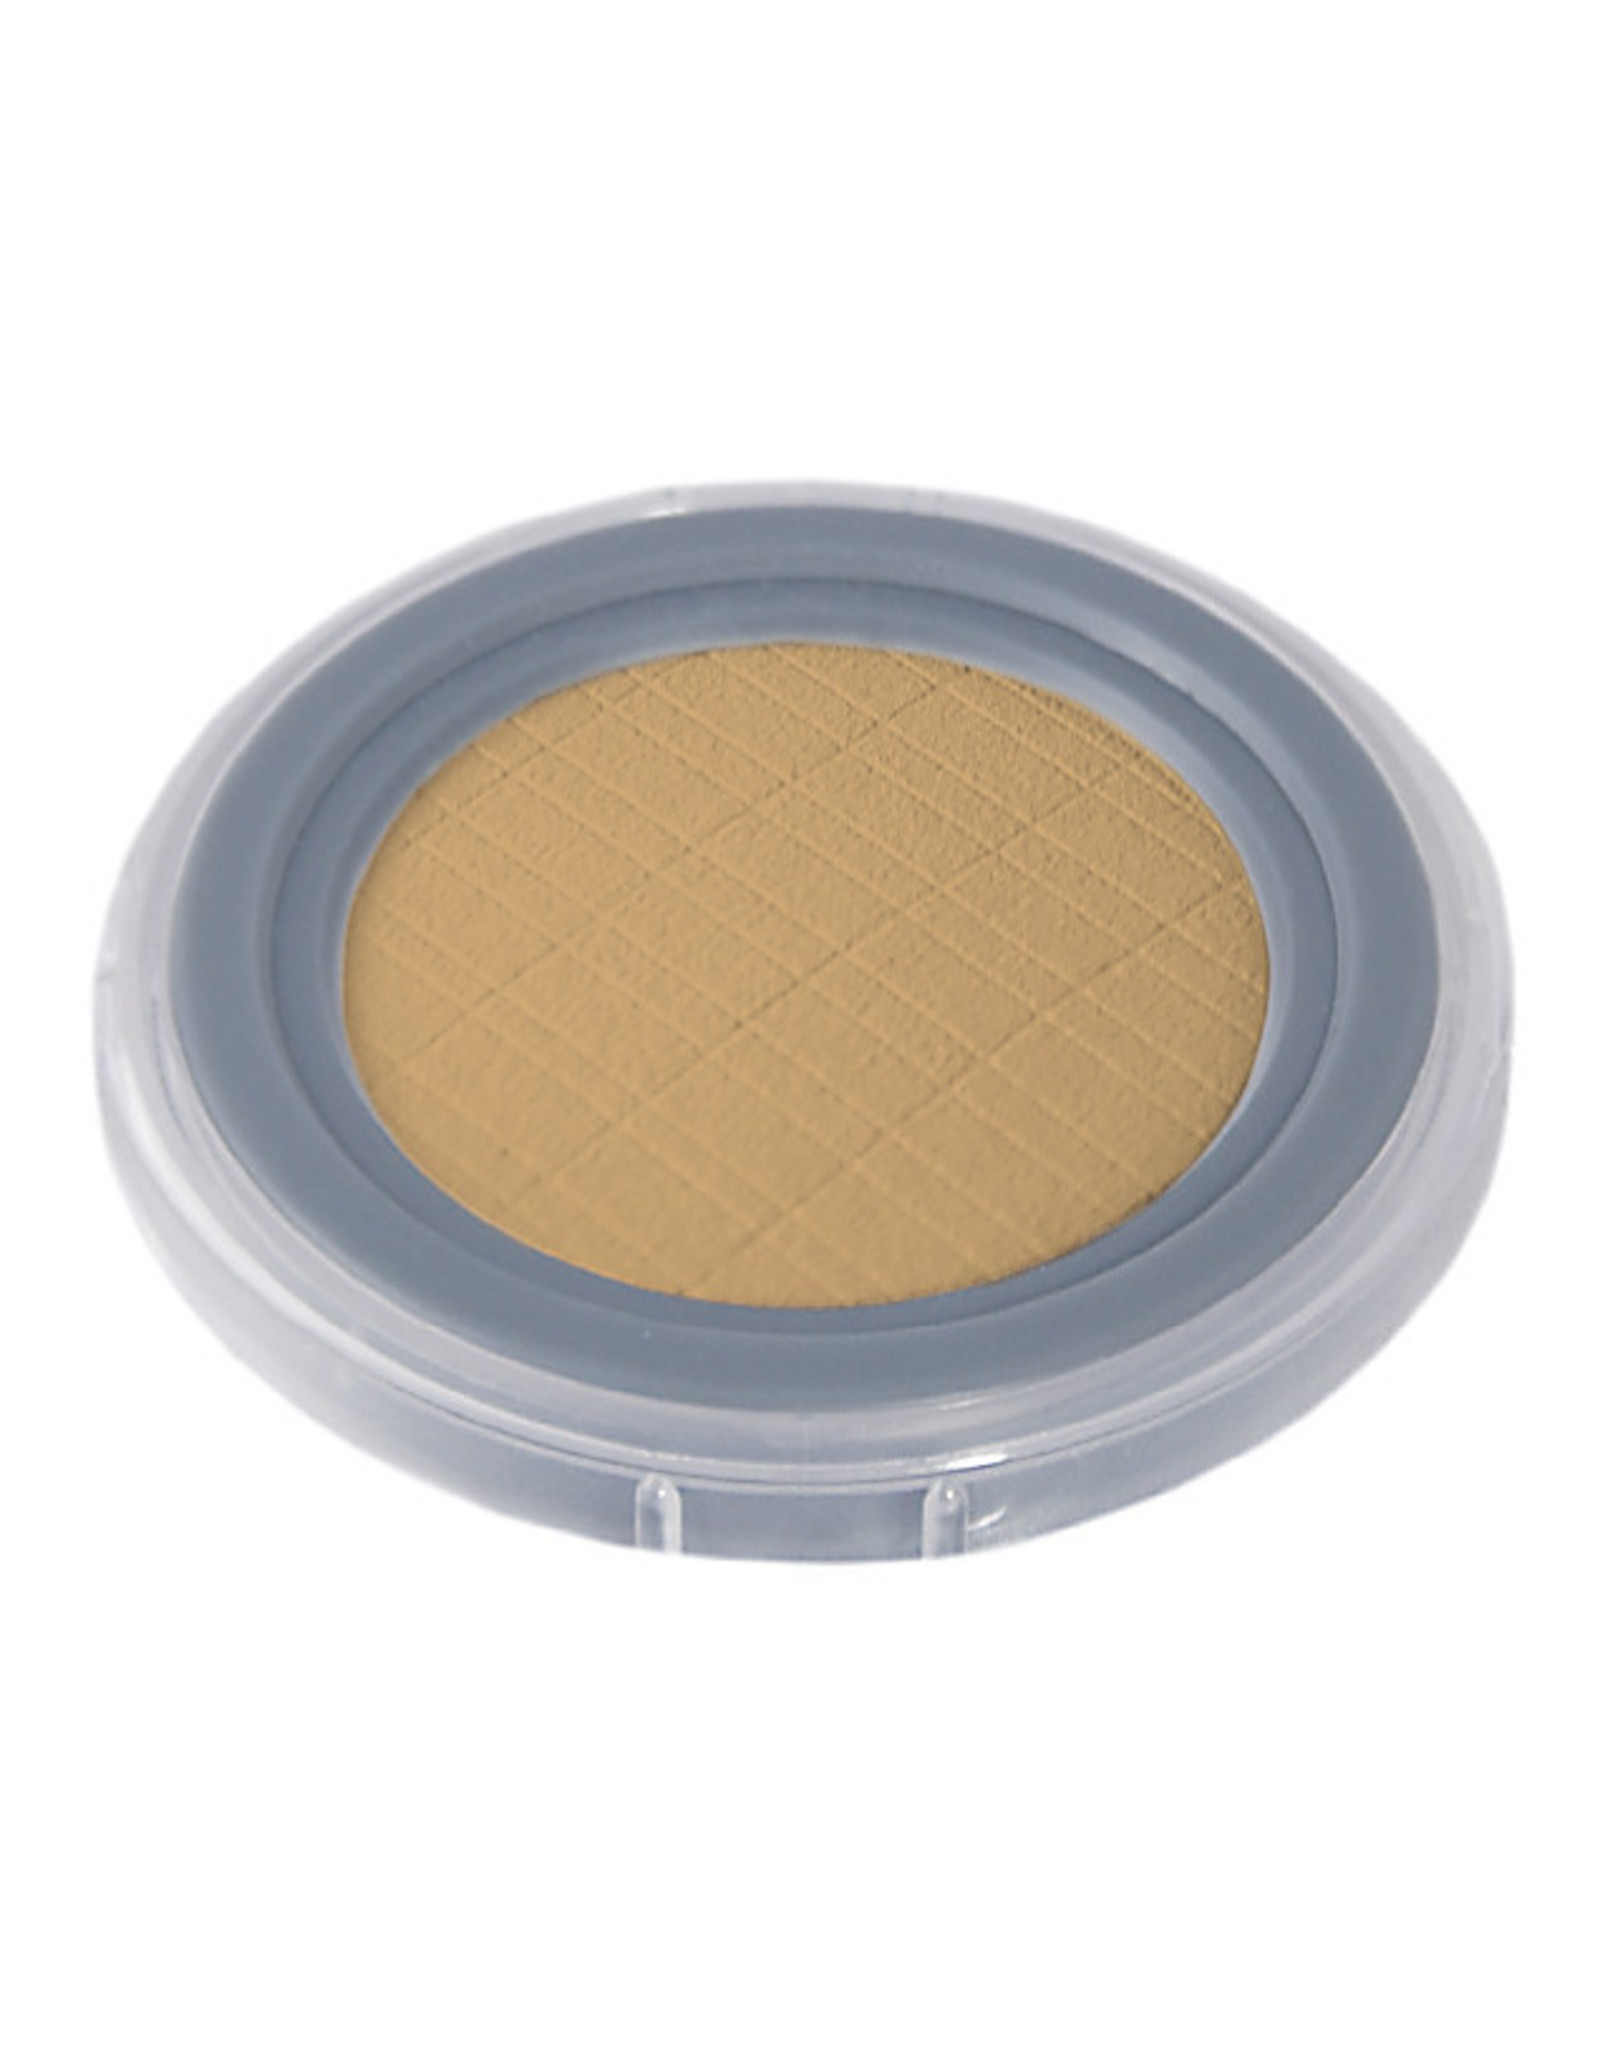 Grimas COMPACT POWDER 06 Neutraal donker 8 g